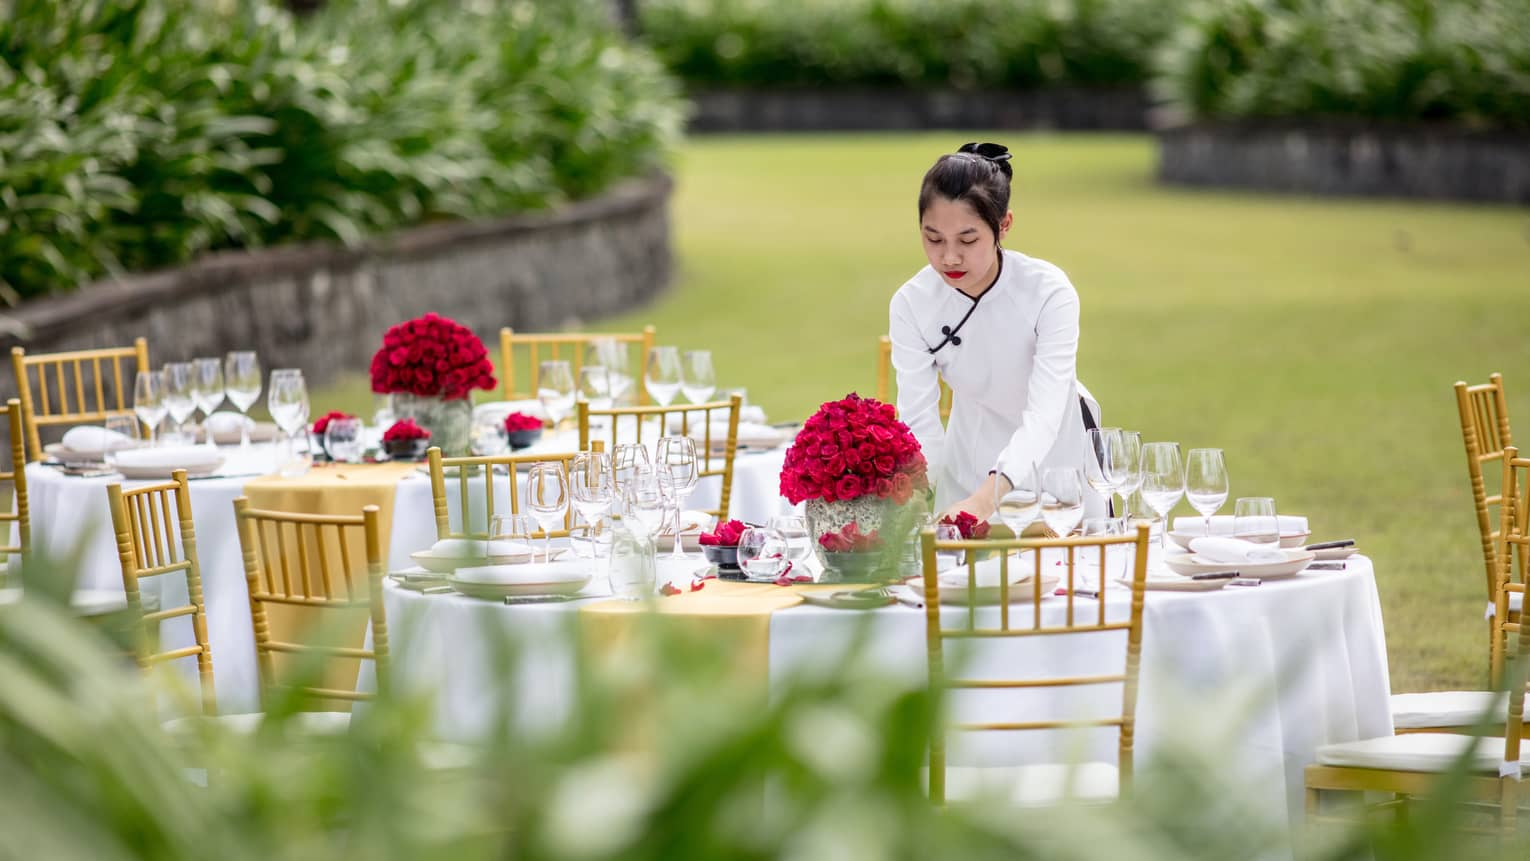 A staff member sets a table out in the lawn with red flowers for a wedding